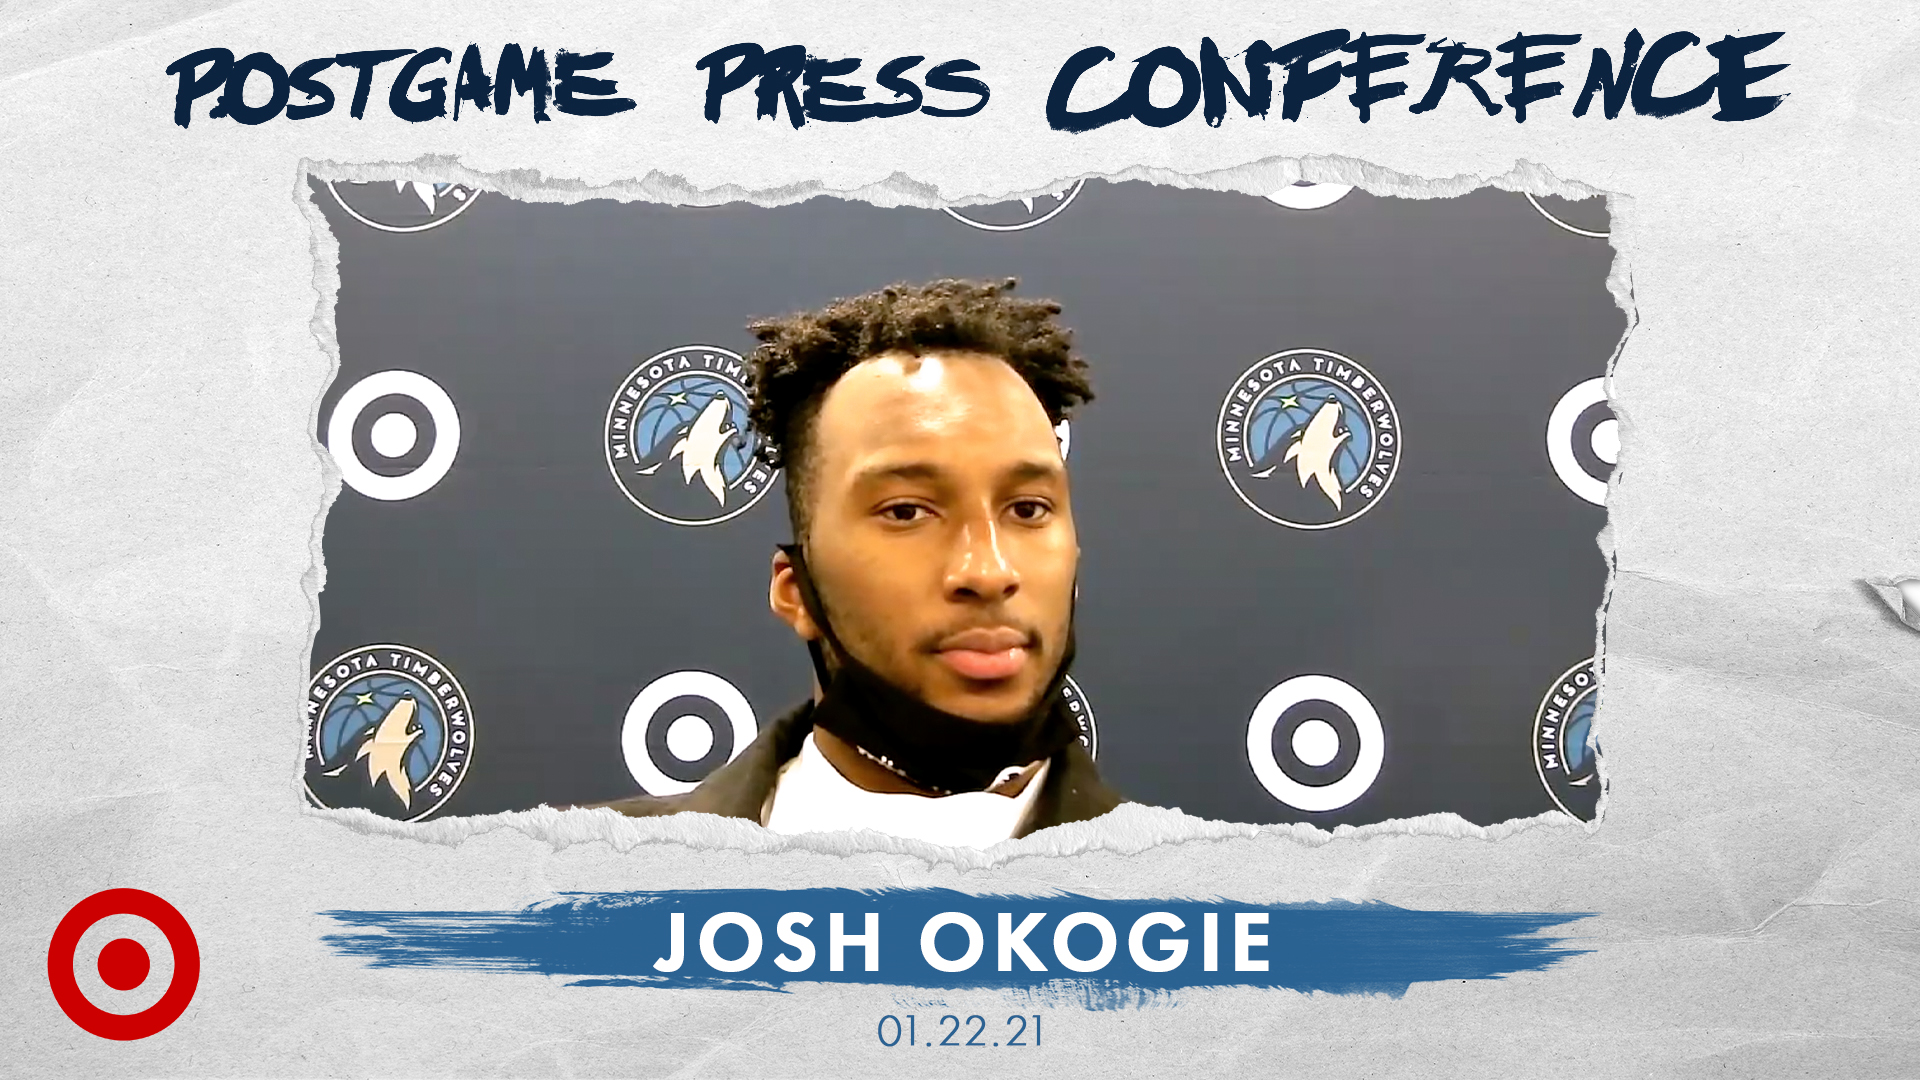 Josh Okogie Postgame Press Conference - January 22, 2021